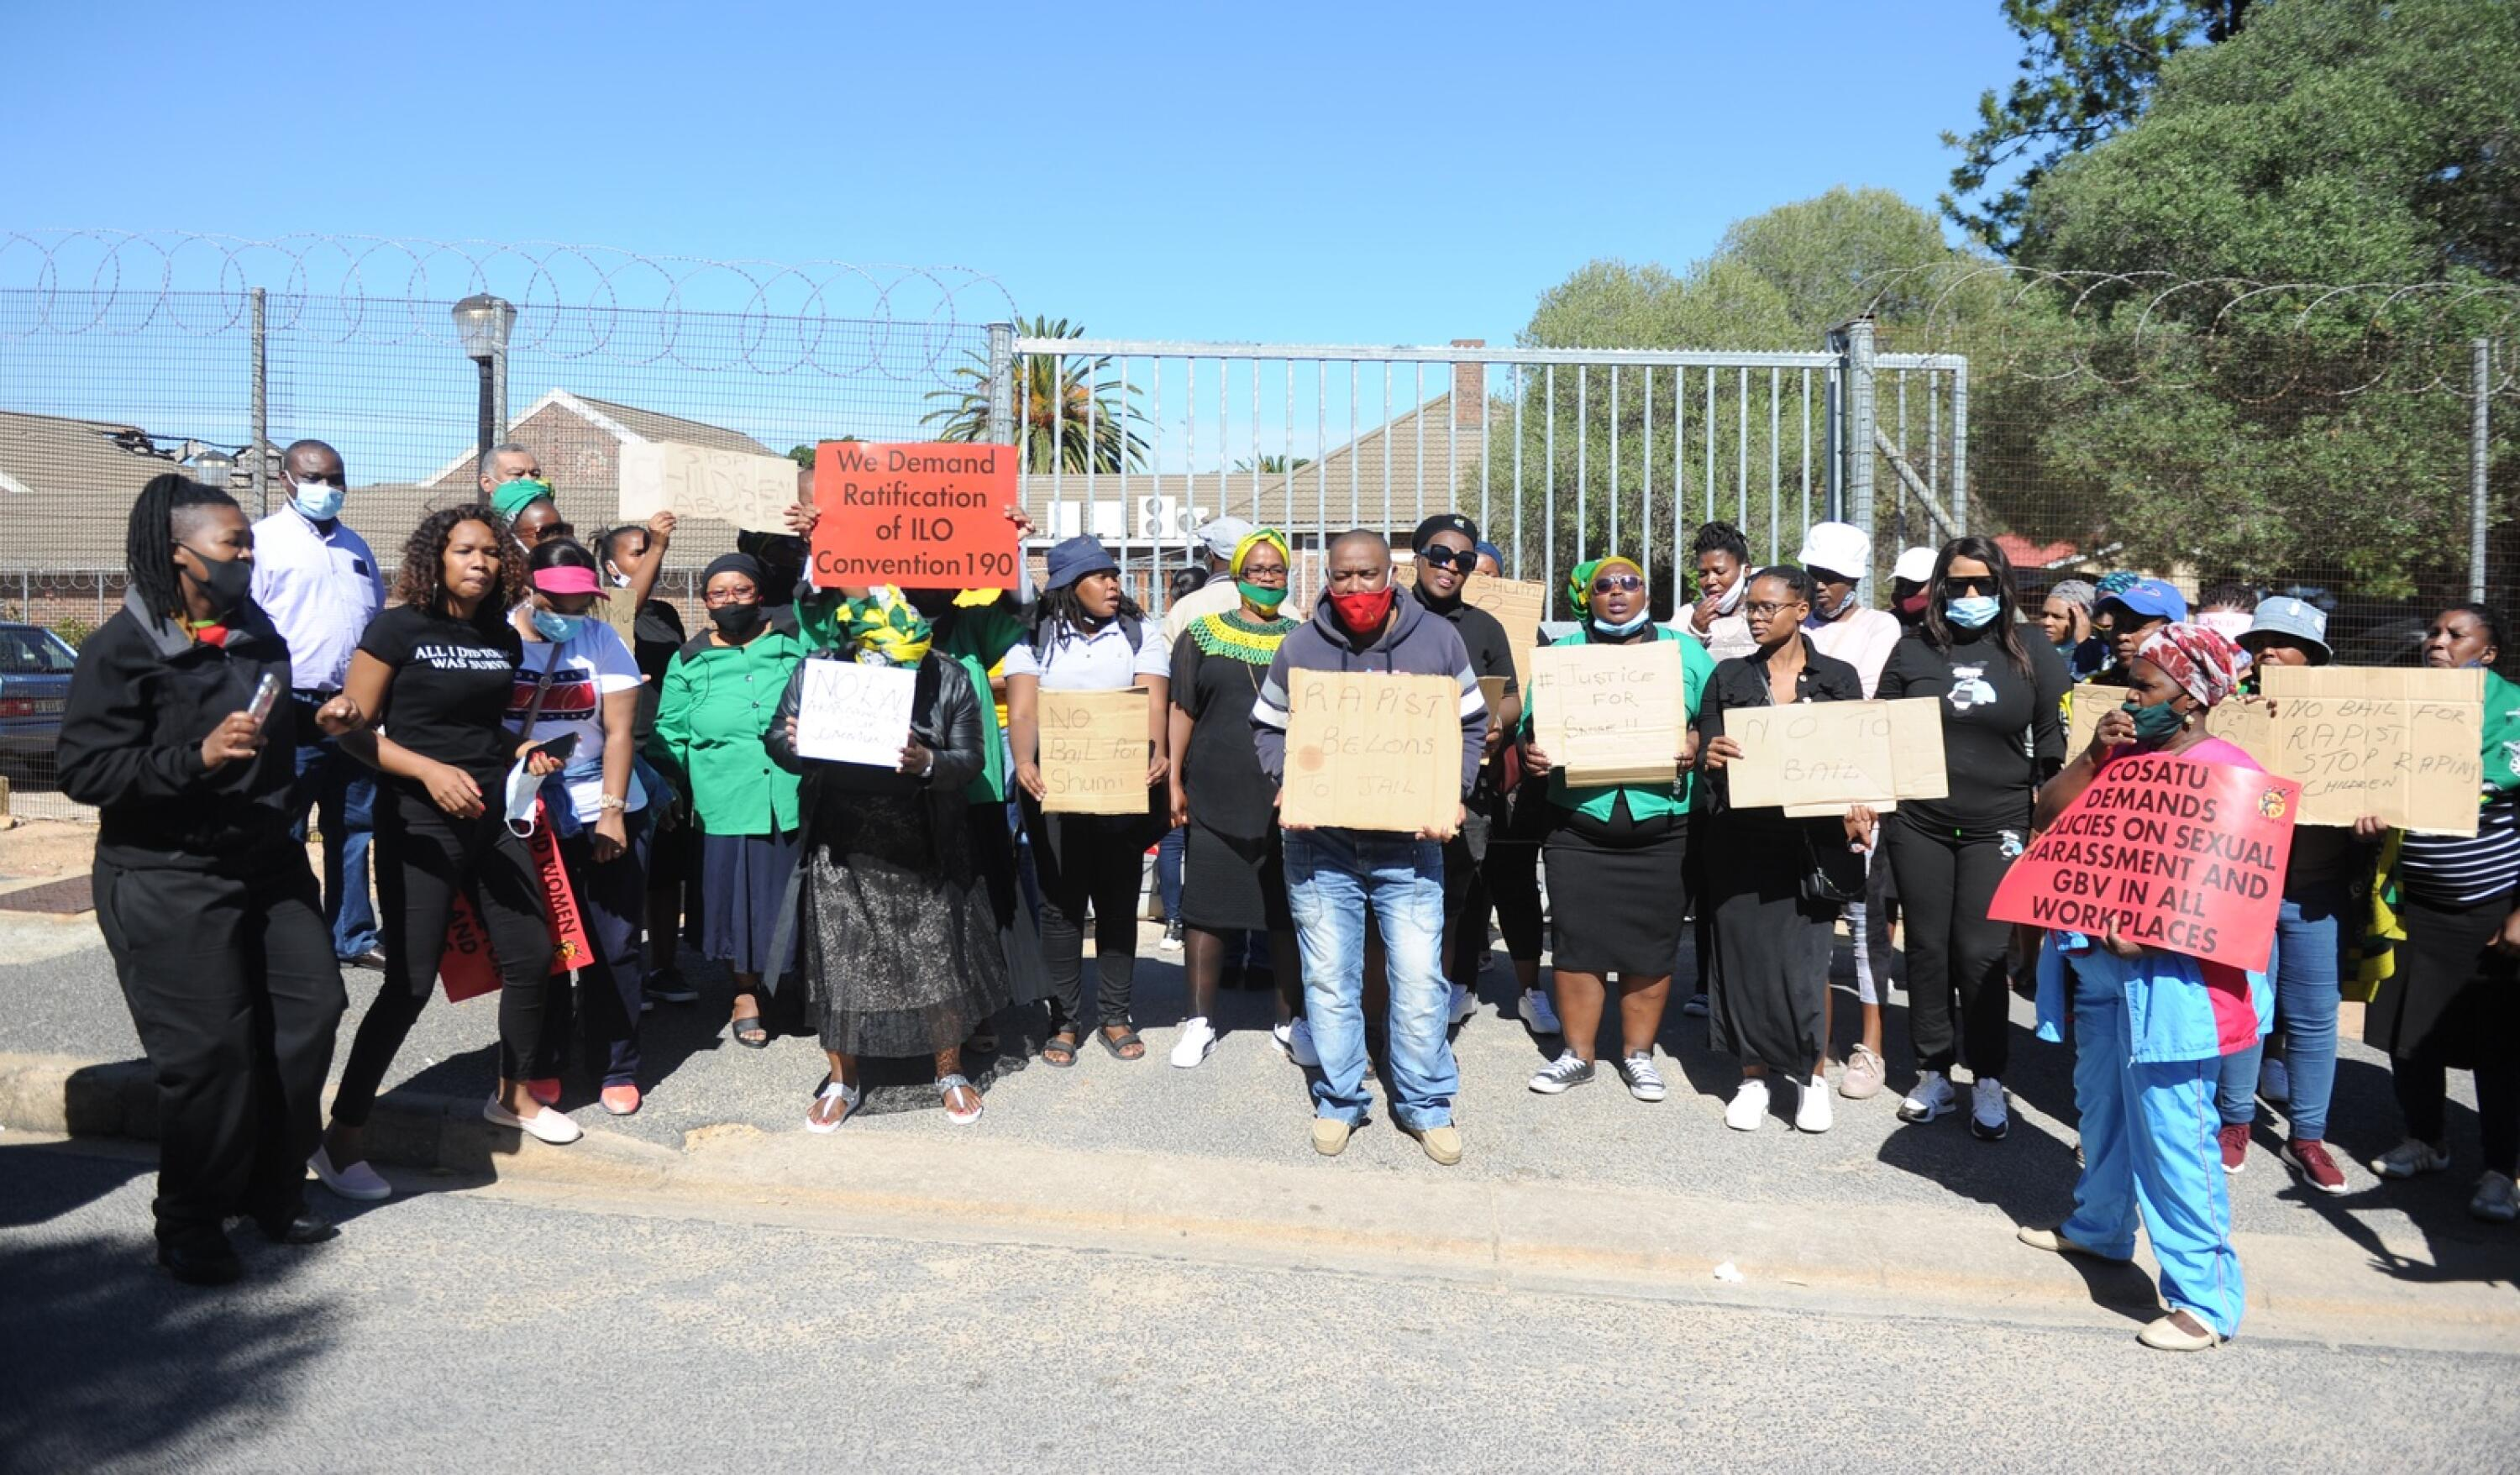 Protesters hold up placards outside a courthouse.